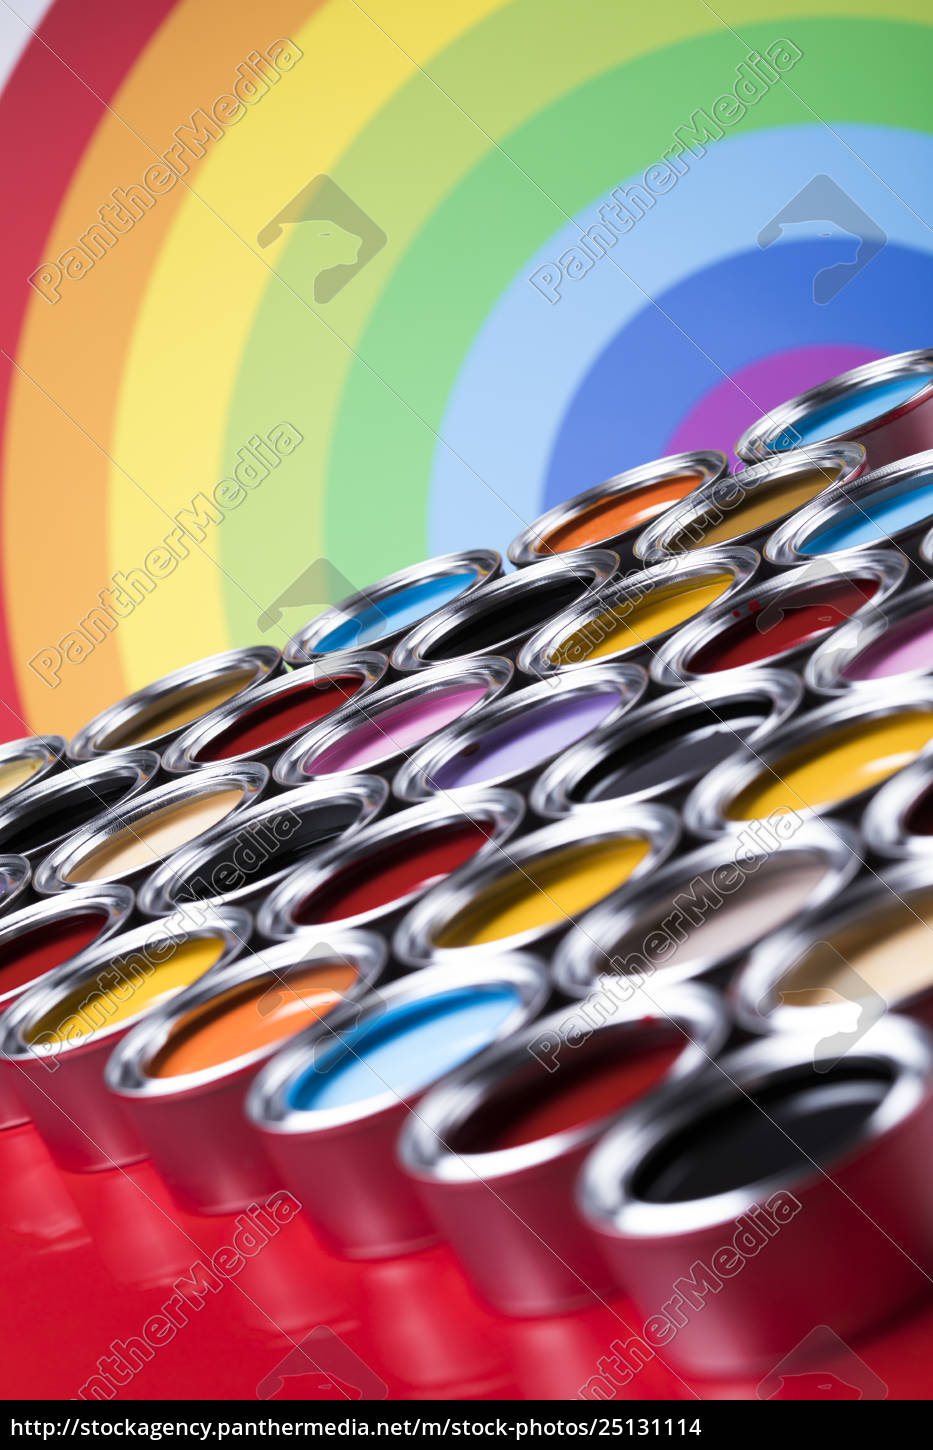 rainbow, colors, , open, cans, of, paint - 25131114